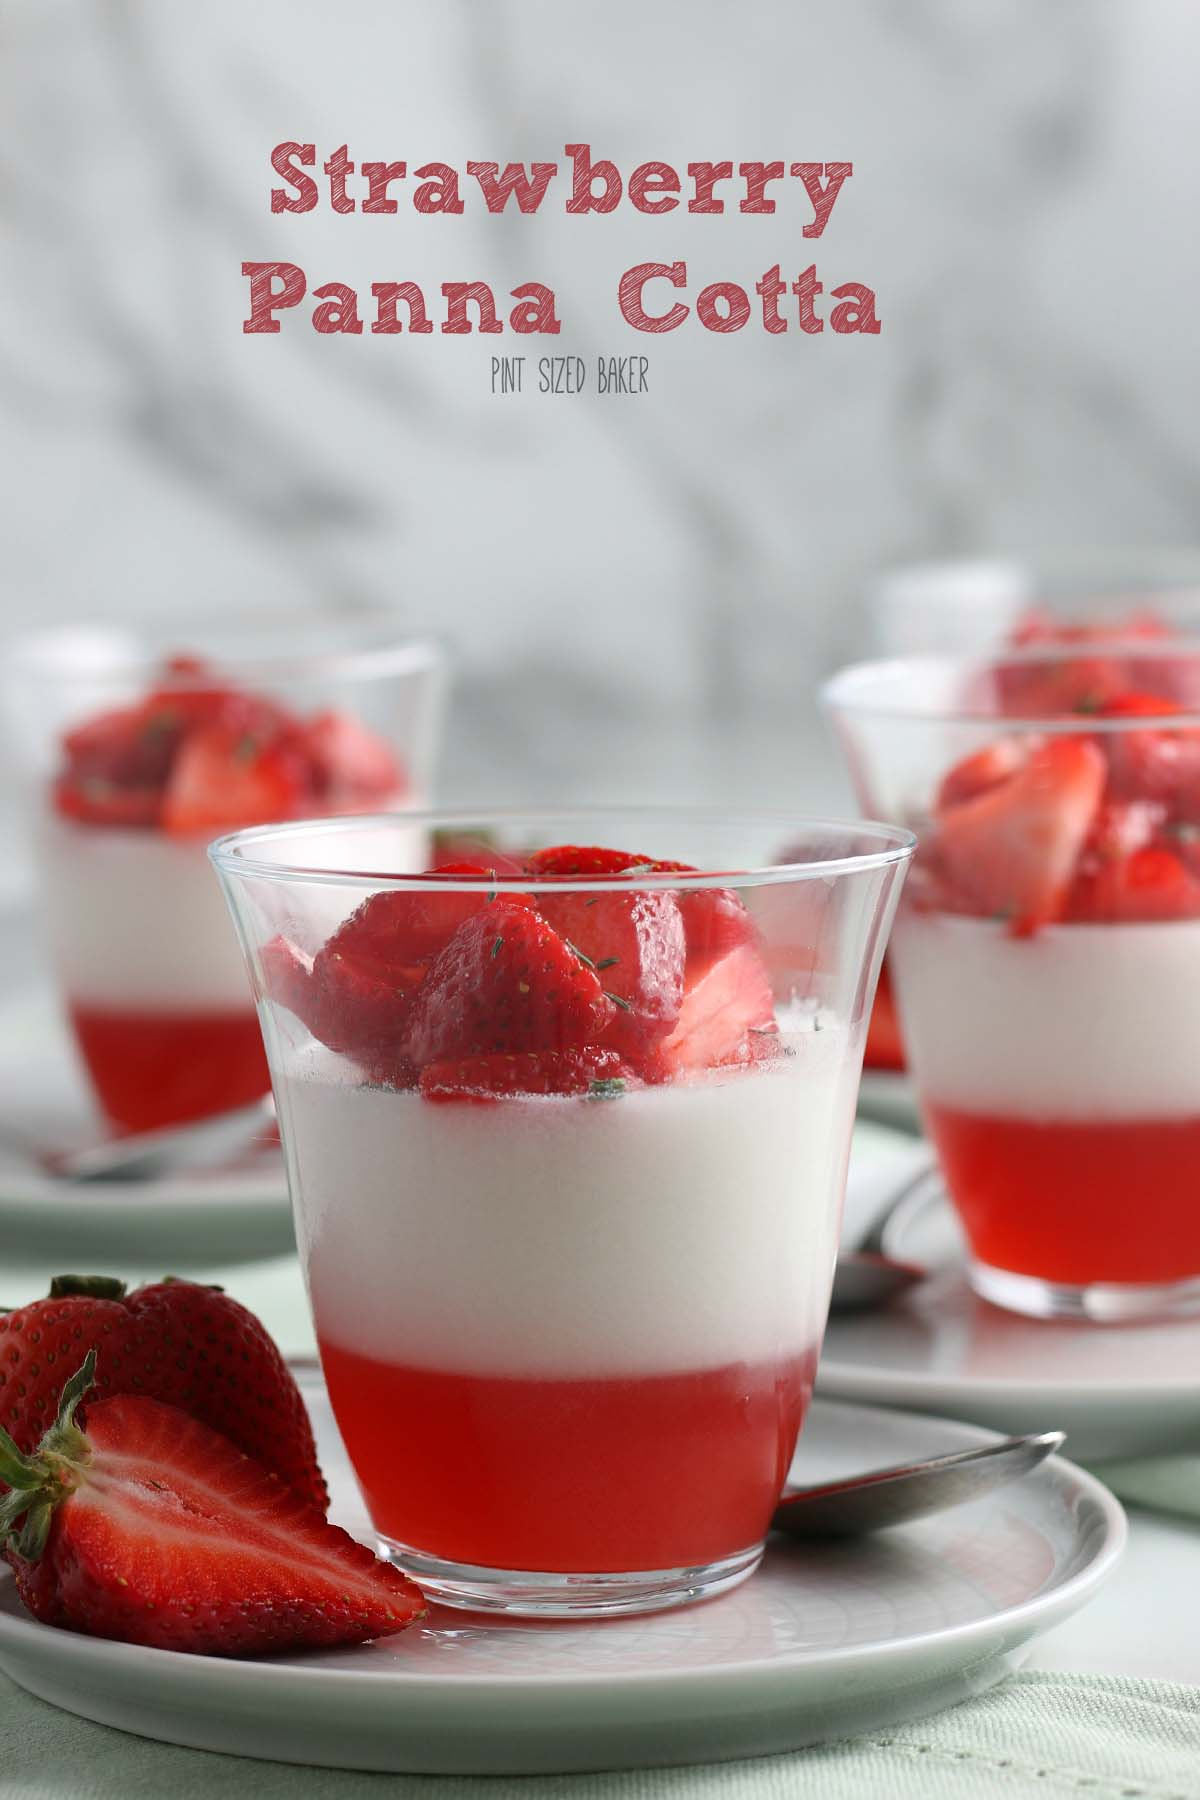 This is an easy panna cotta recipe. Coconut panna cotta is a layered jello dessert that everyone loves. It's perfectly creamy and delicious.